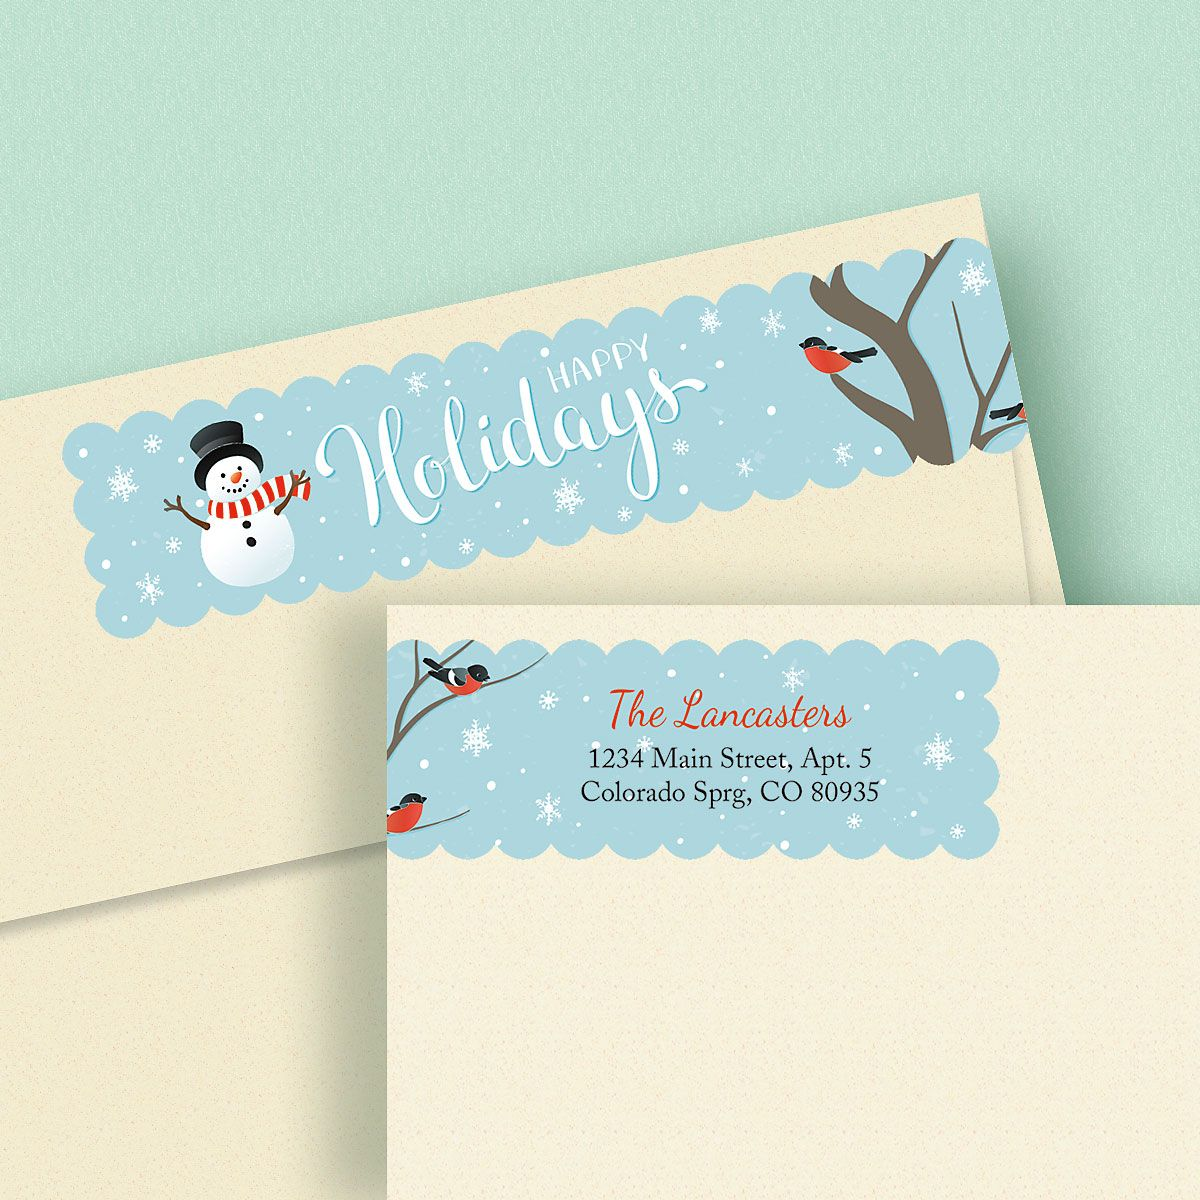 Winter Holidays Wrap Around Address Labels